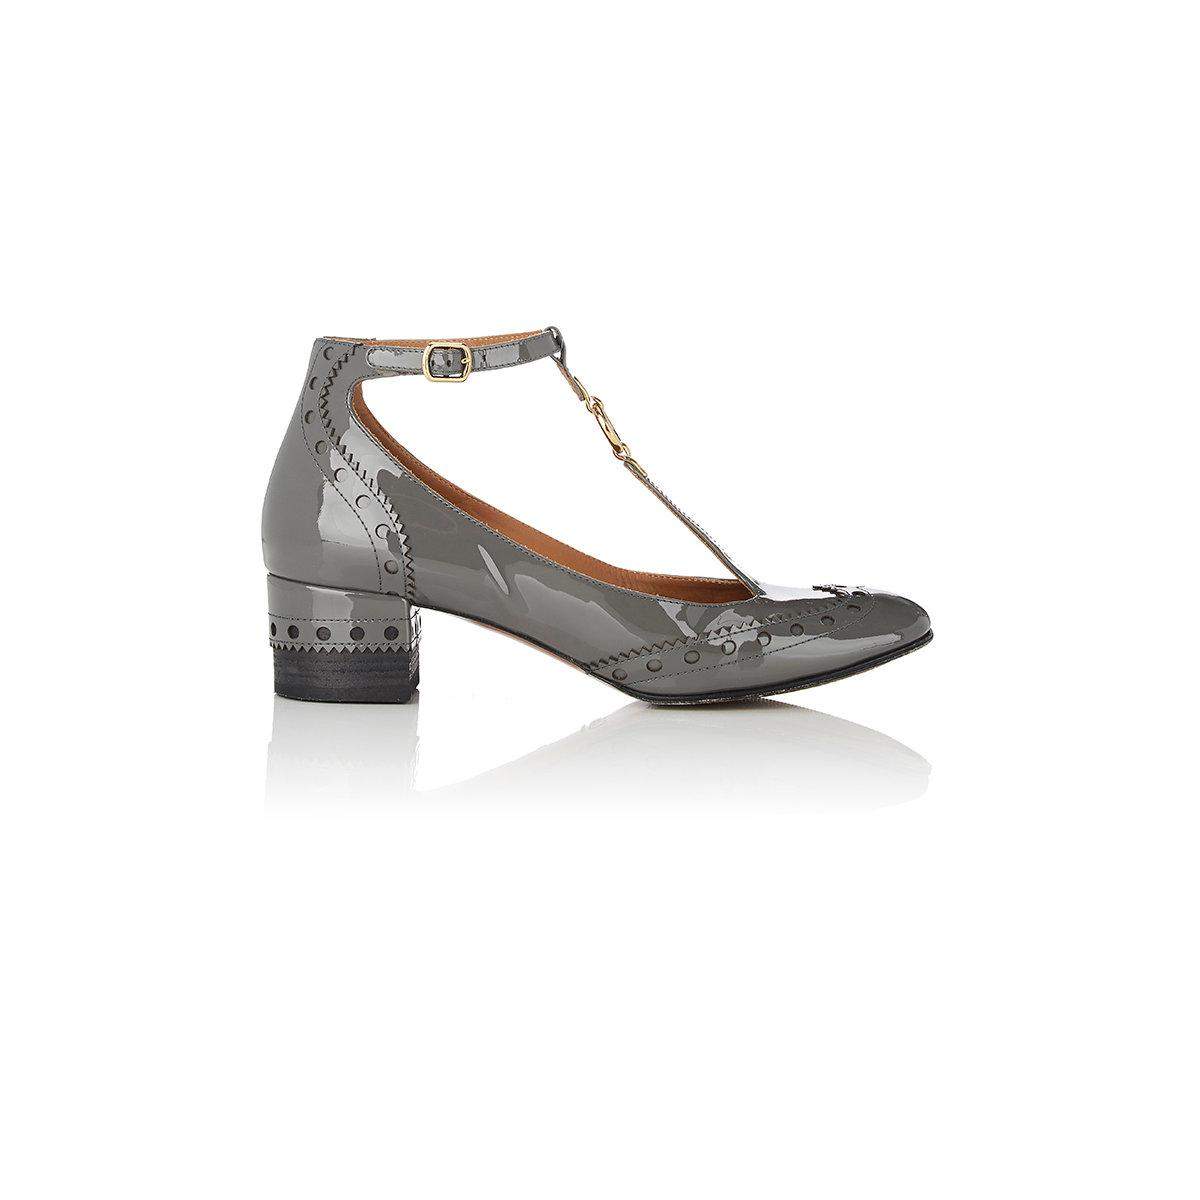 How Much Cheap Online Chloé Patent Leather Sandals Discount New Arrival Discount Reliable Footlocker Pictures For Sale Clearance Get To Buy ydnpnfrEi